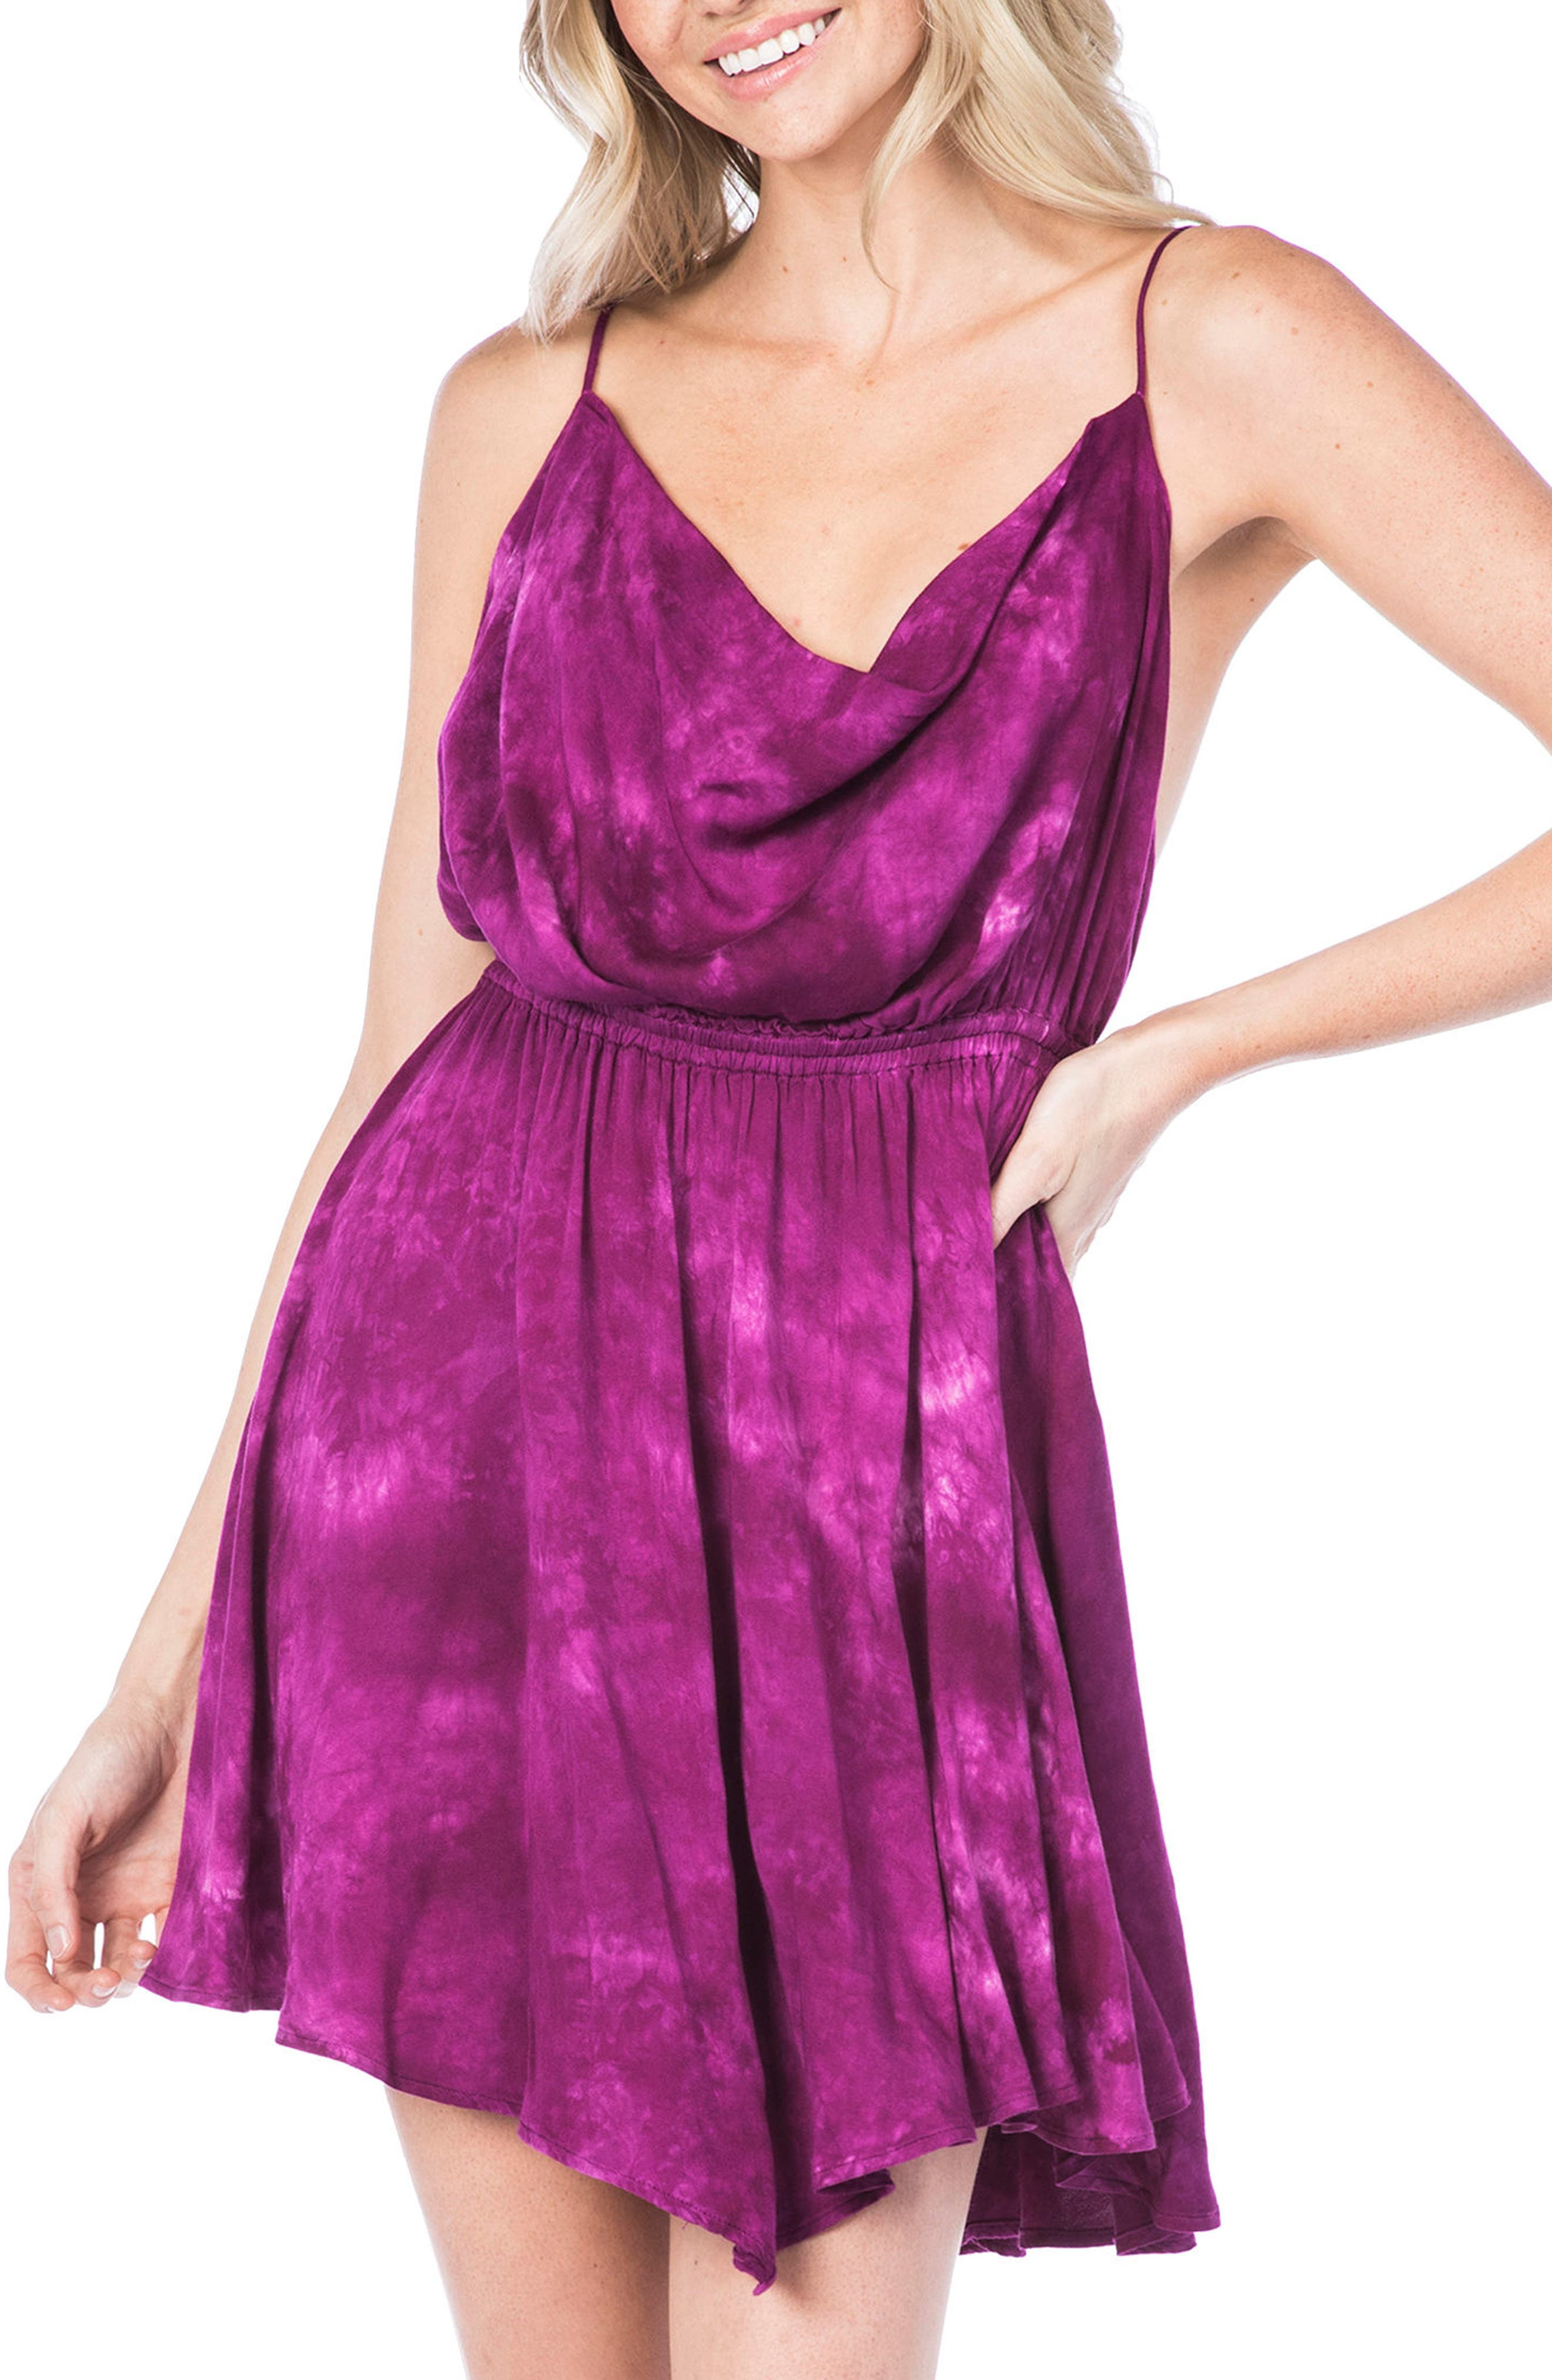 Negril Cowl Neck Cover-Up Dress,                         Main,                         color, 653